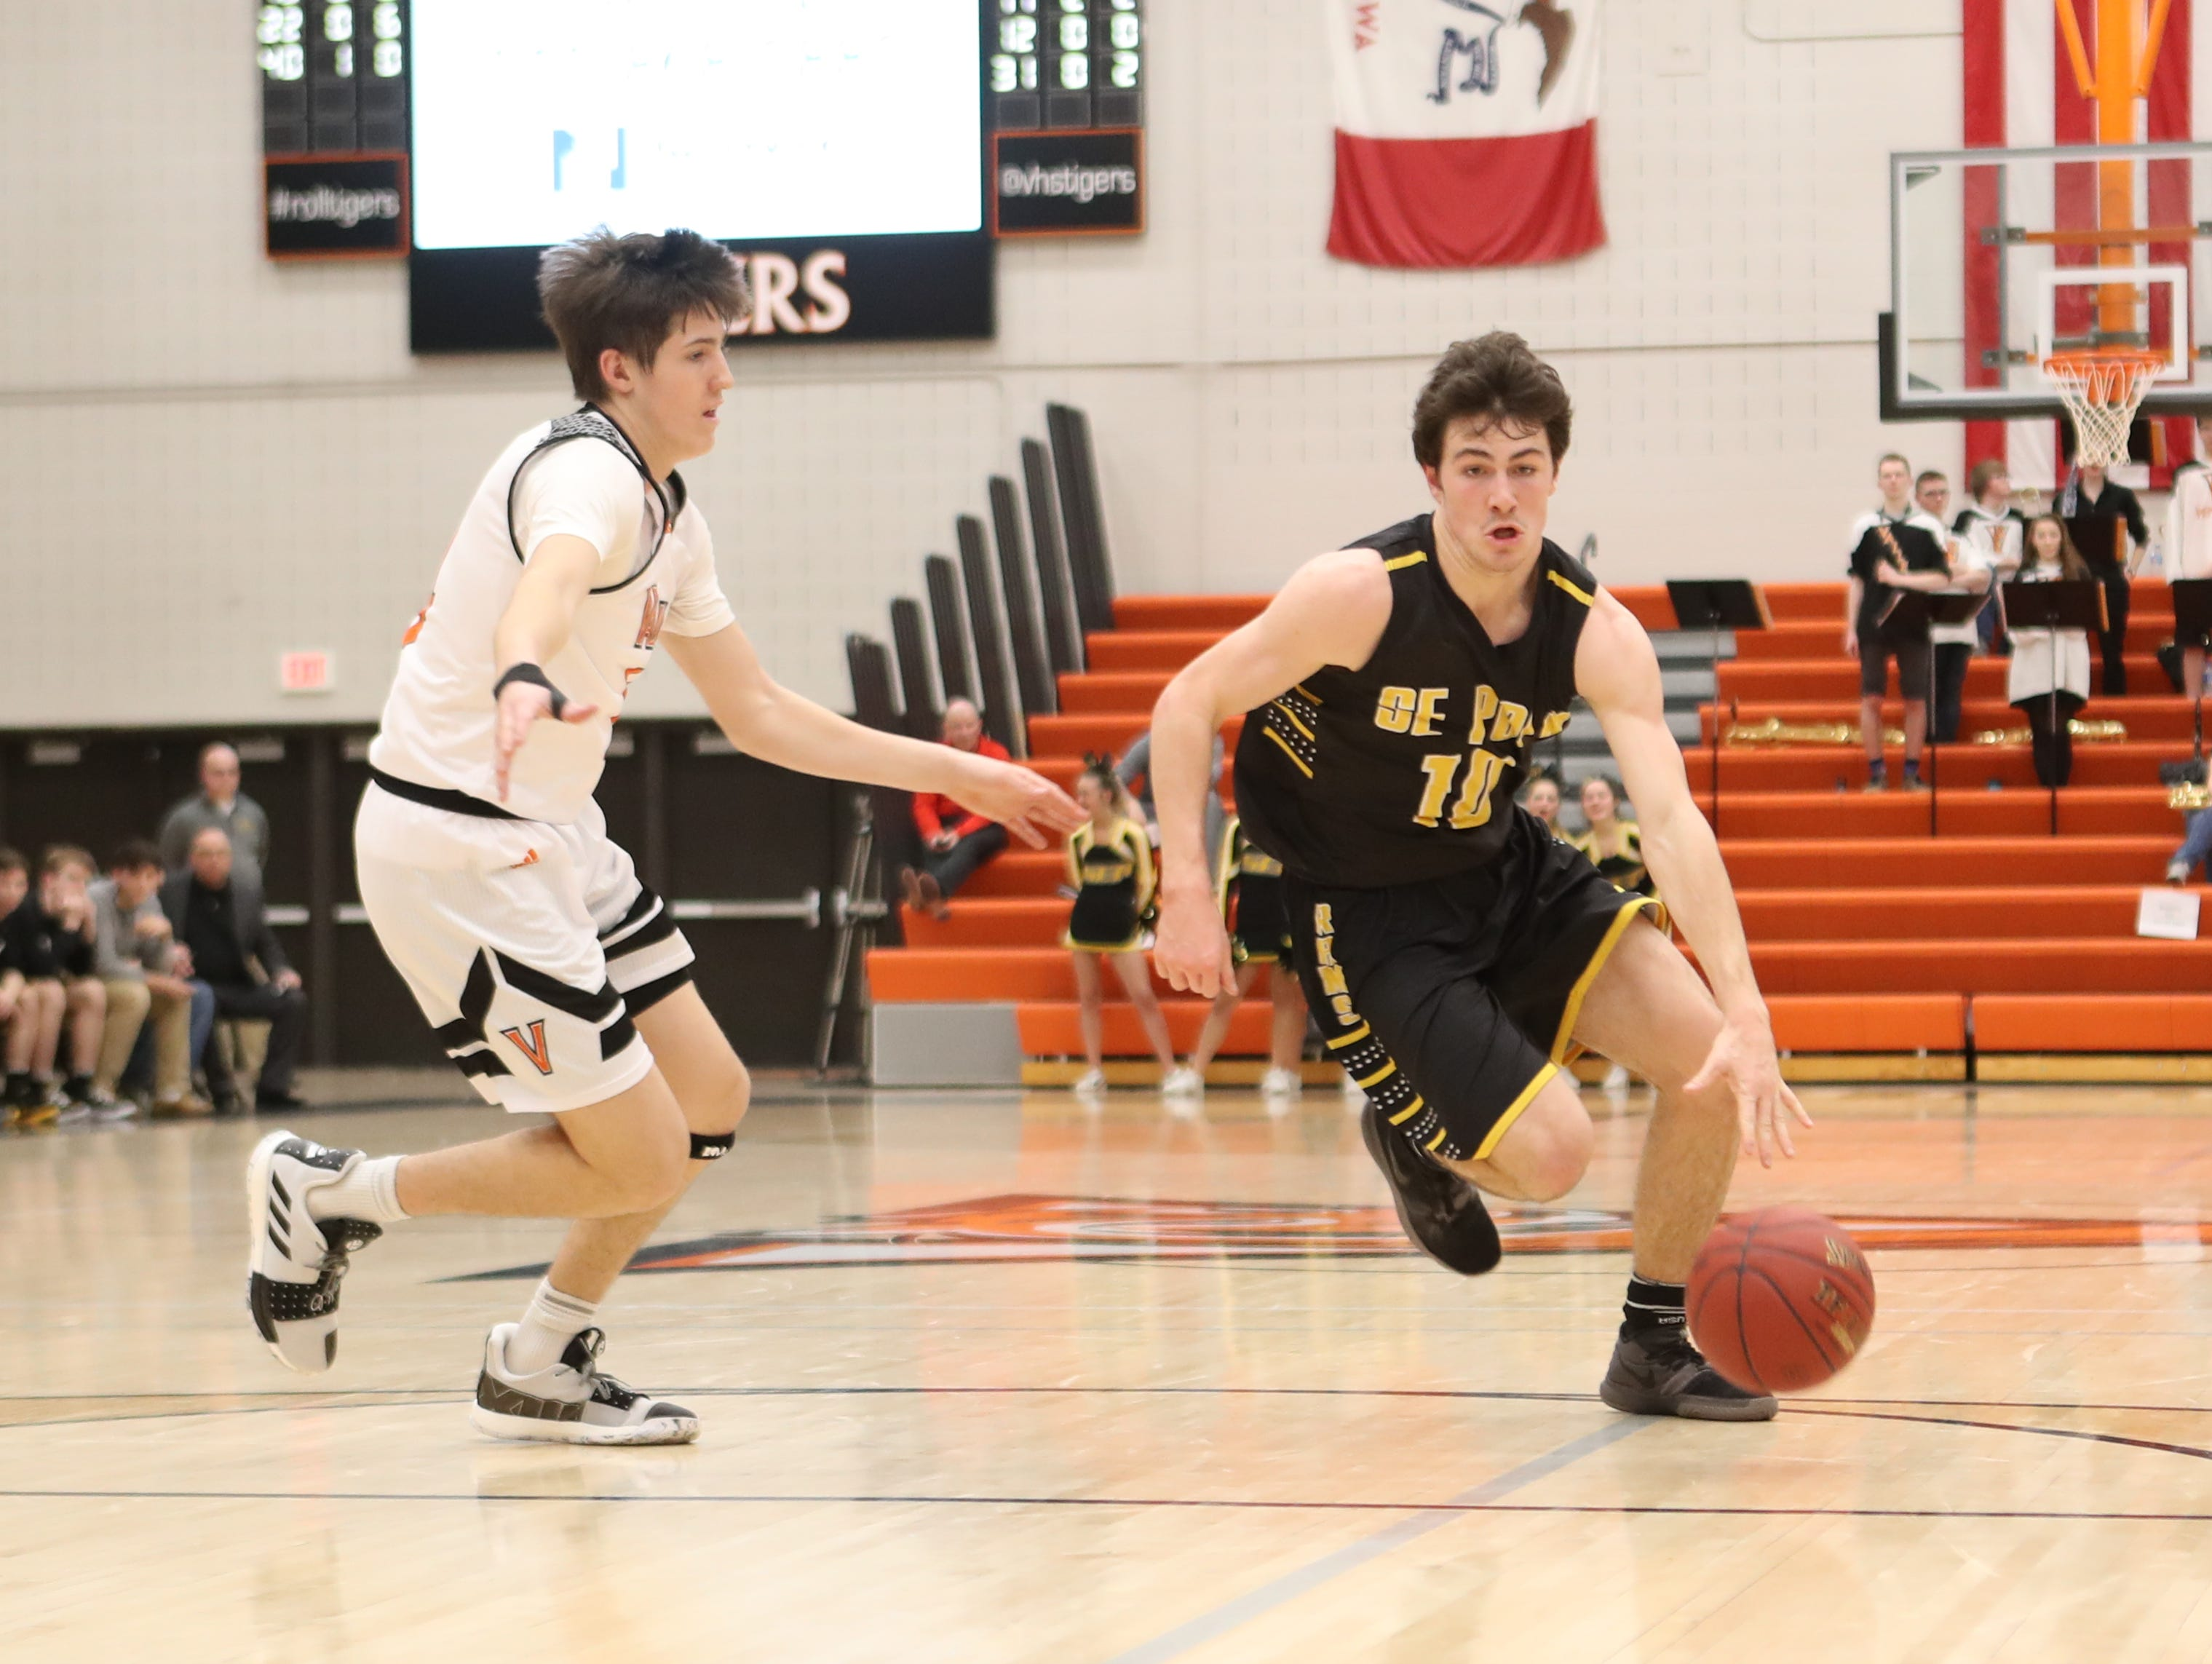 Southeast Polk Rams' Daniel Hackbarth (10) drives to the basket against the Valley Tigers during a boys basketball game at Valley High School on Jan. 11, 2019.